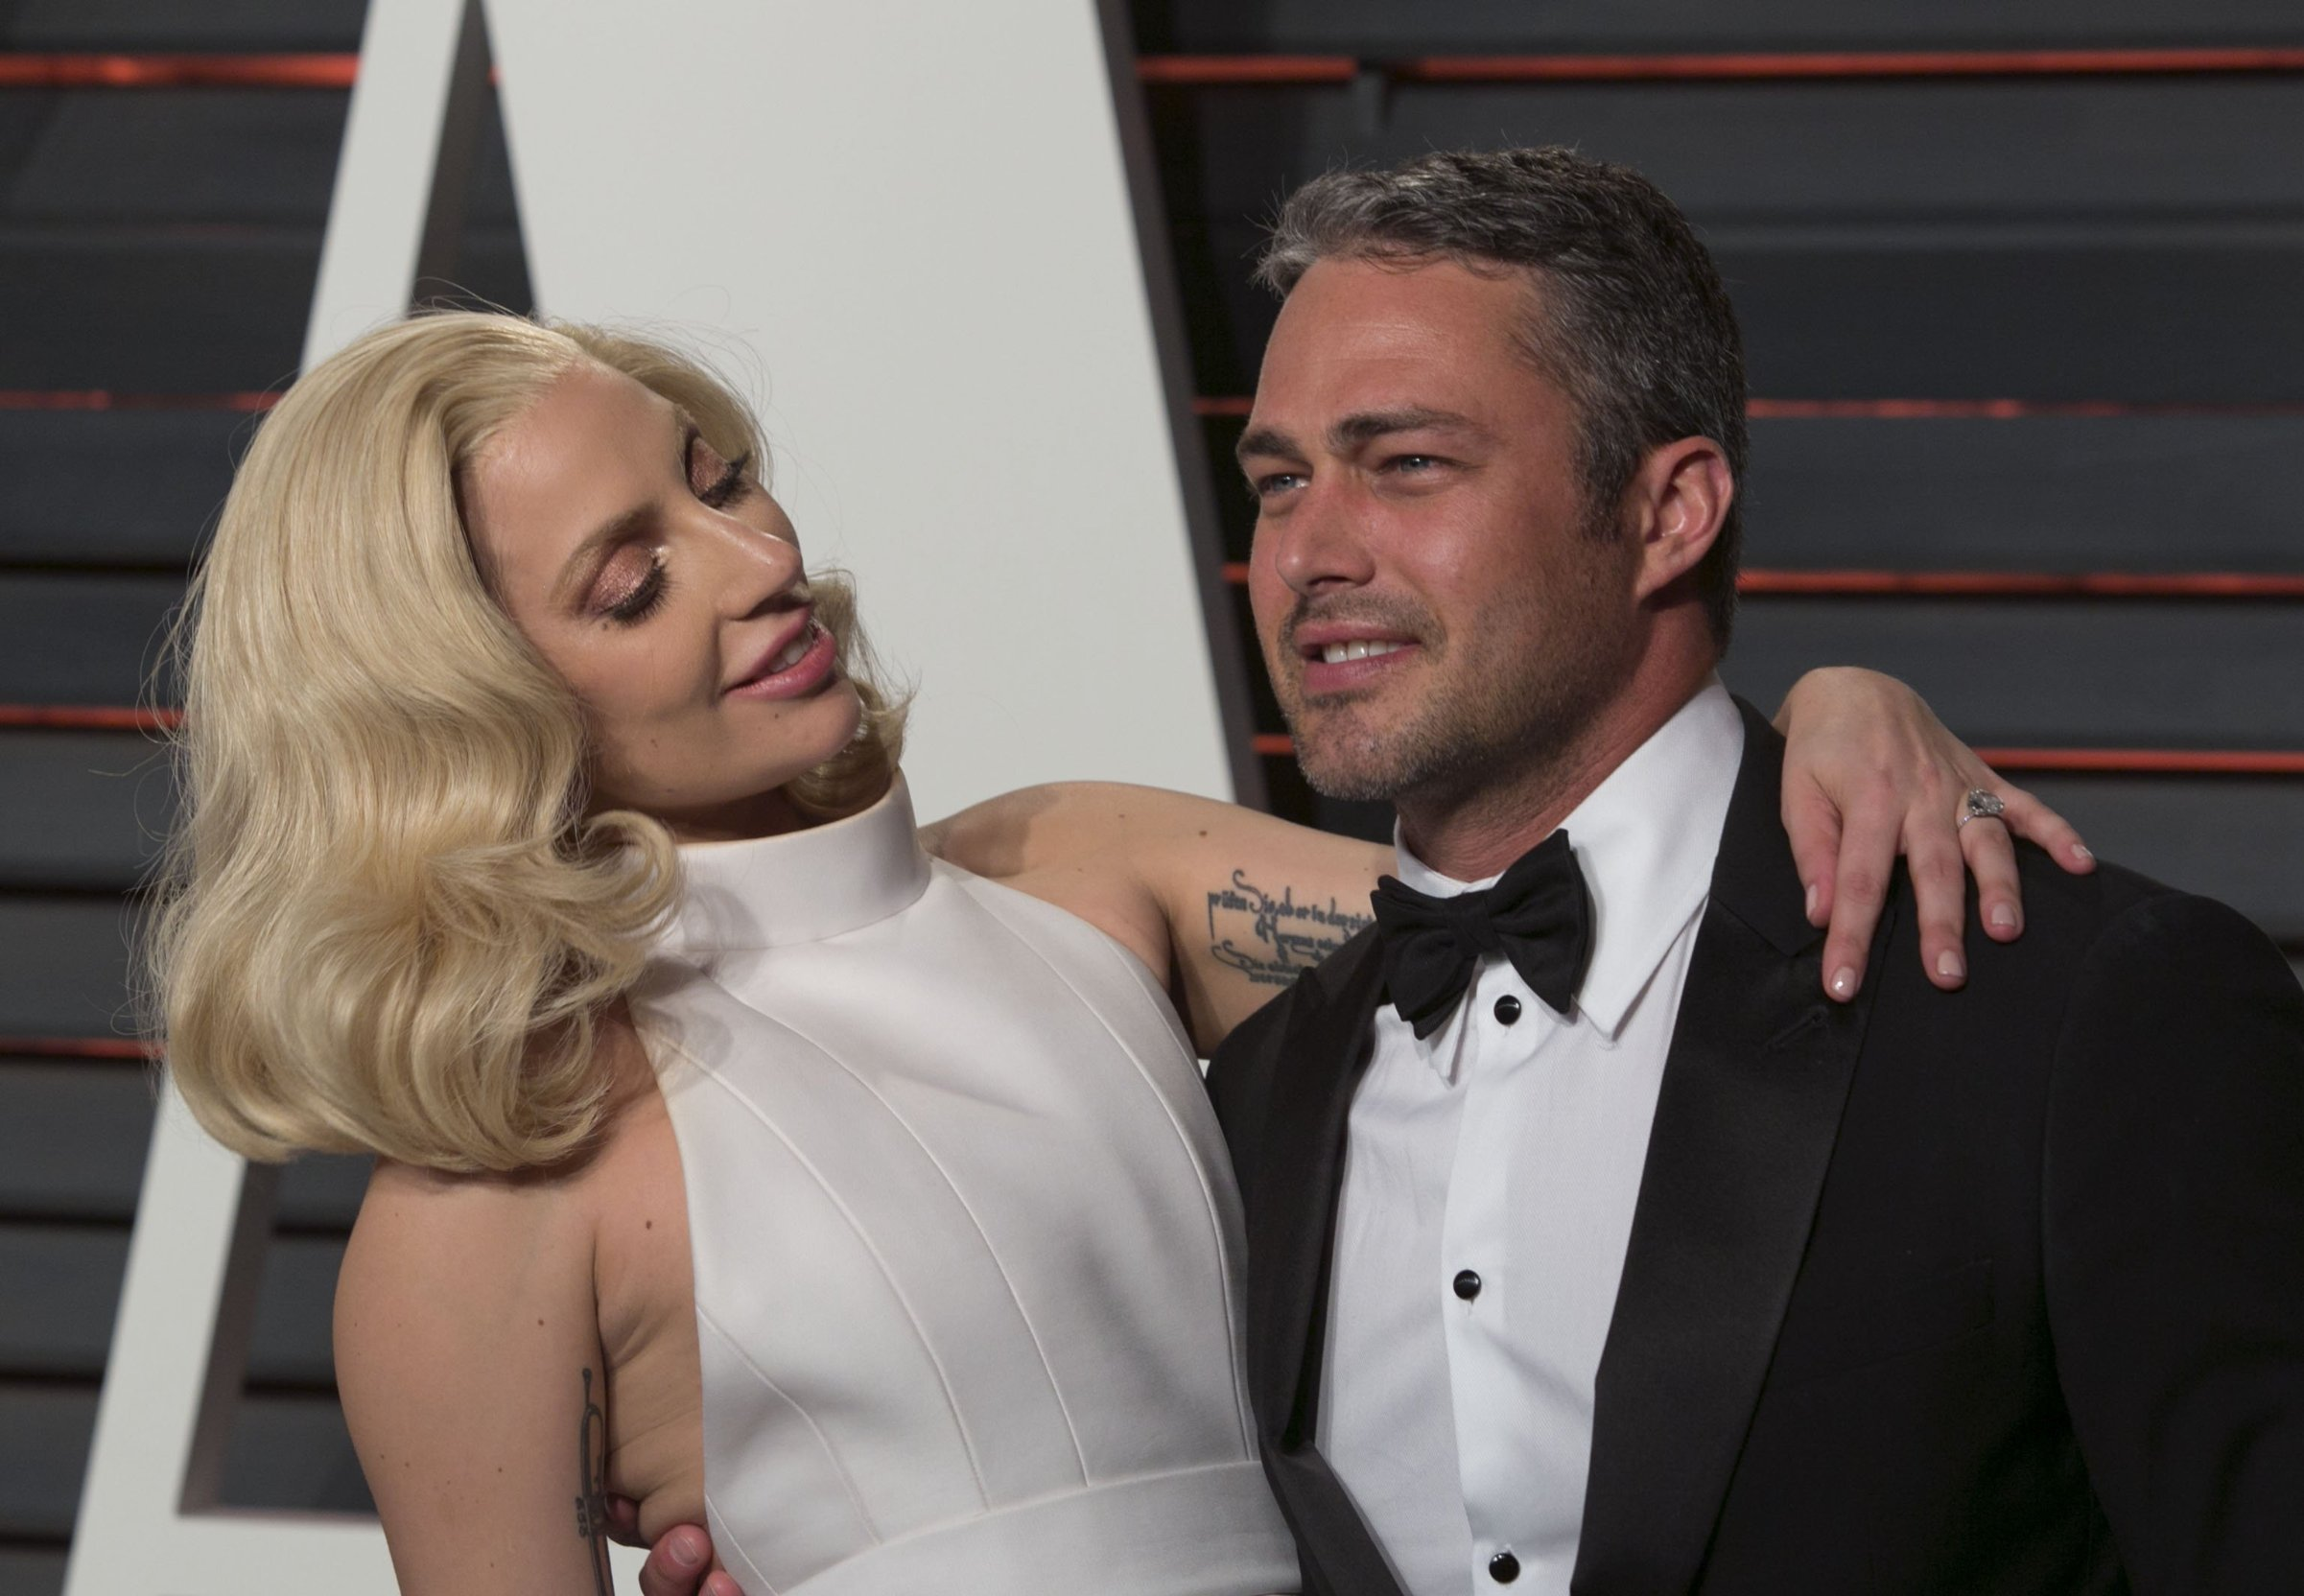 July 19, 2016 - Beverly Hills, California, U.S - Lady Gaga and Fianc�© Taylor Kinney have reportedly broken up after five years, Tuesday July 19, 2016. FILE PHOTO: Lady Gaga and Fianc�© Taylor Kinney on the red carpet at the 2016 Vanity Fair Oscar Party held at the Annenberg Center in Beverly Hills, California, Sunday February 28, 2016., Image: 294596426, License: Rights-managed, Restrictions: , Model Release: no, Credit line: Profimedia, Zuma Press